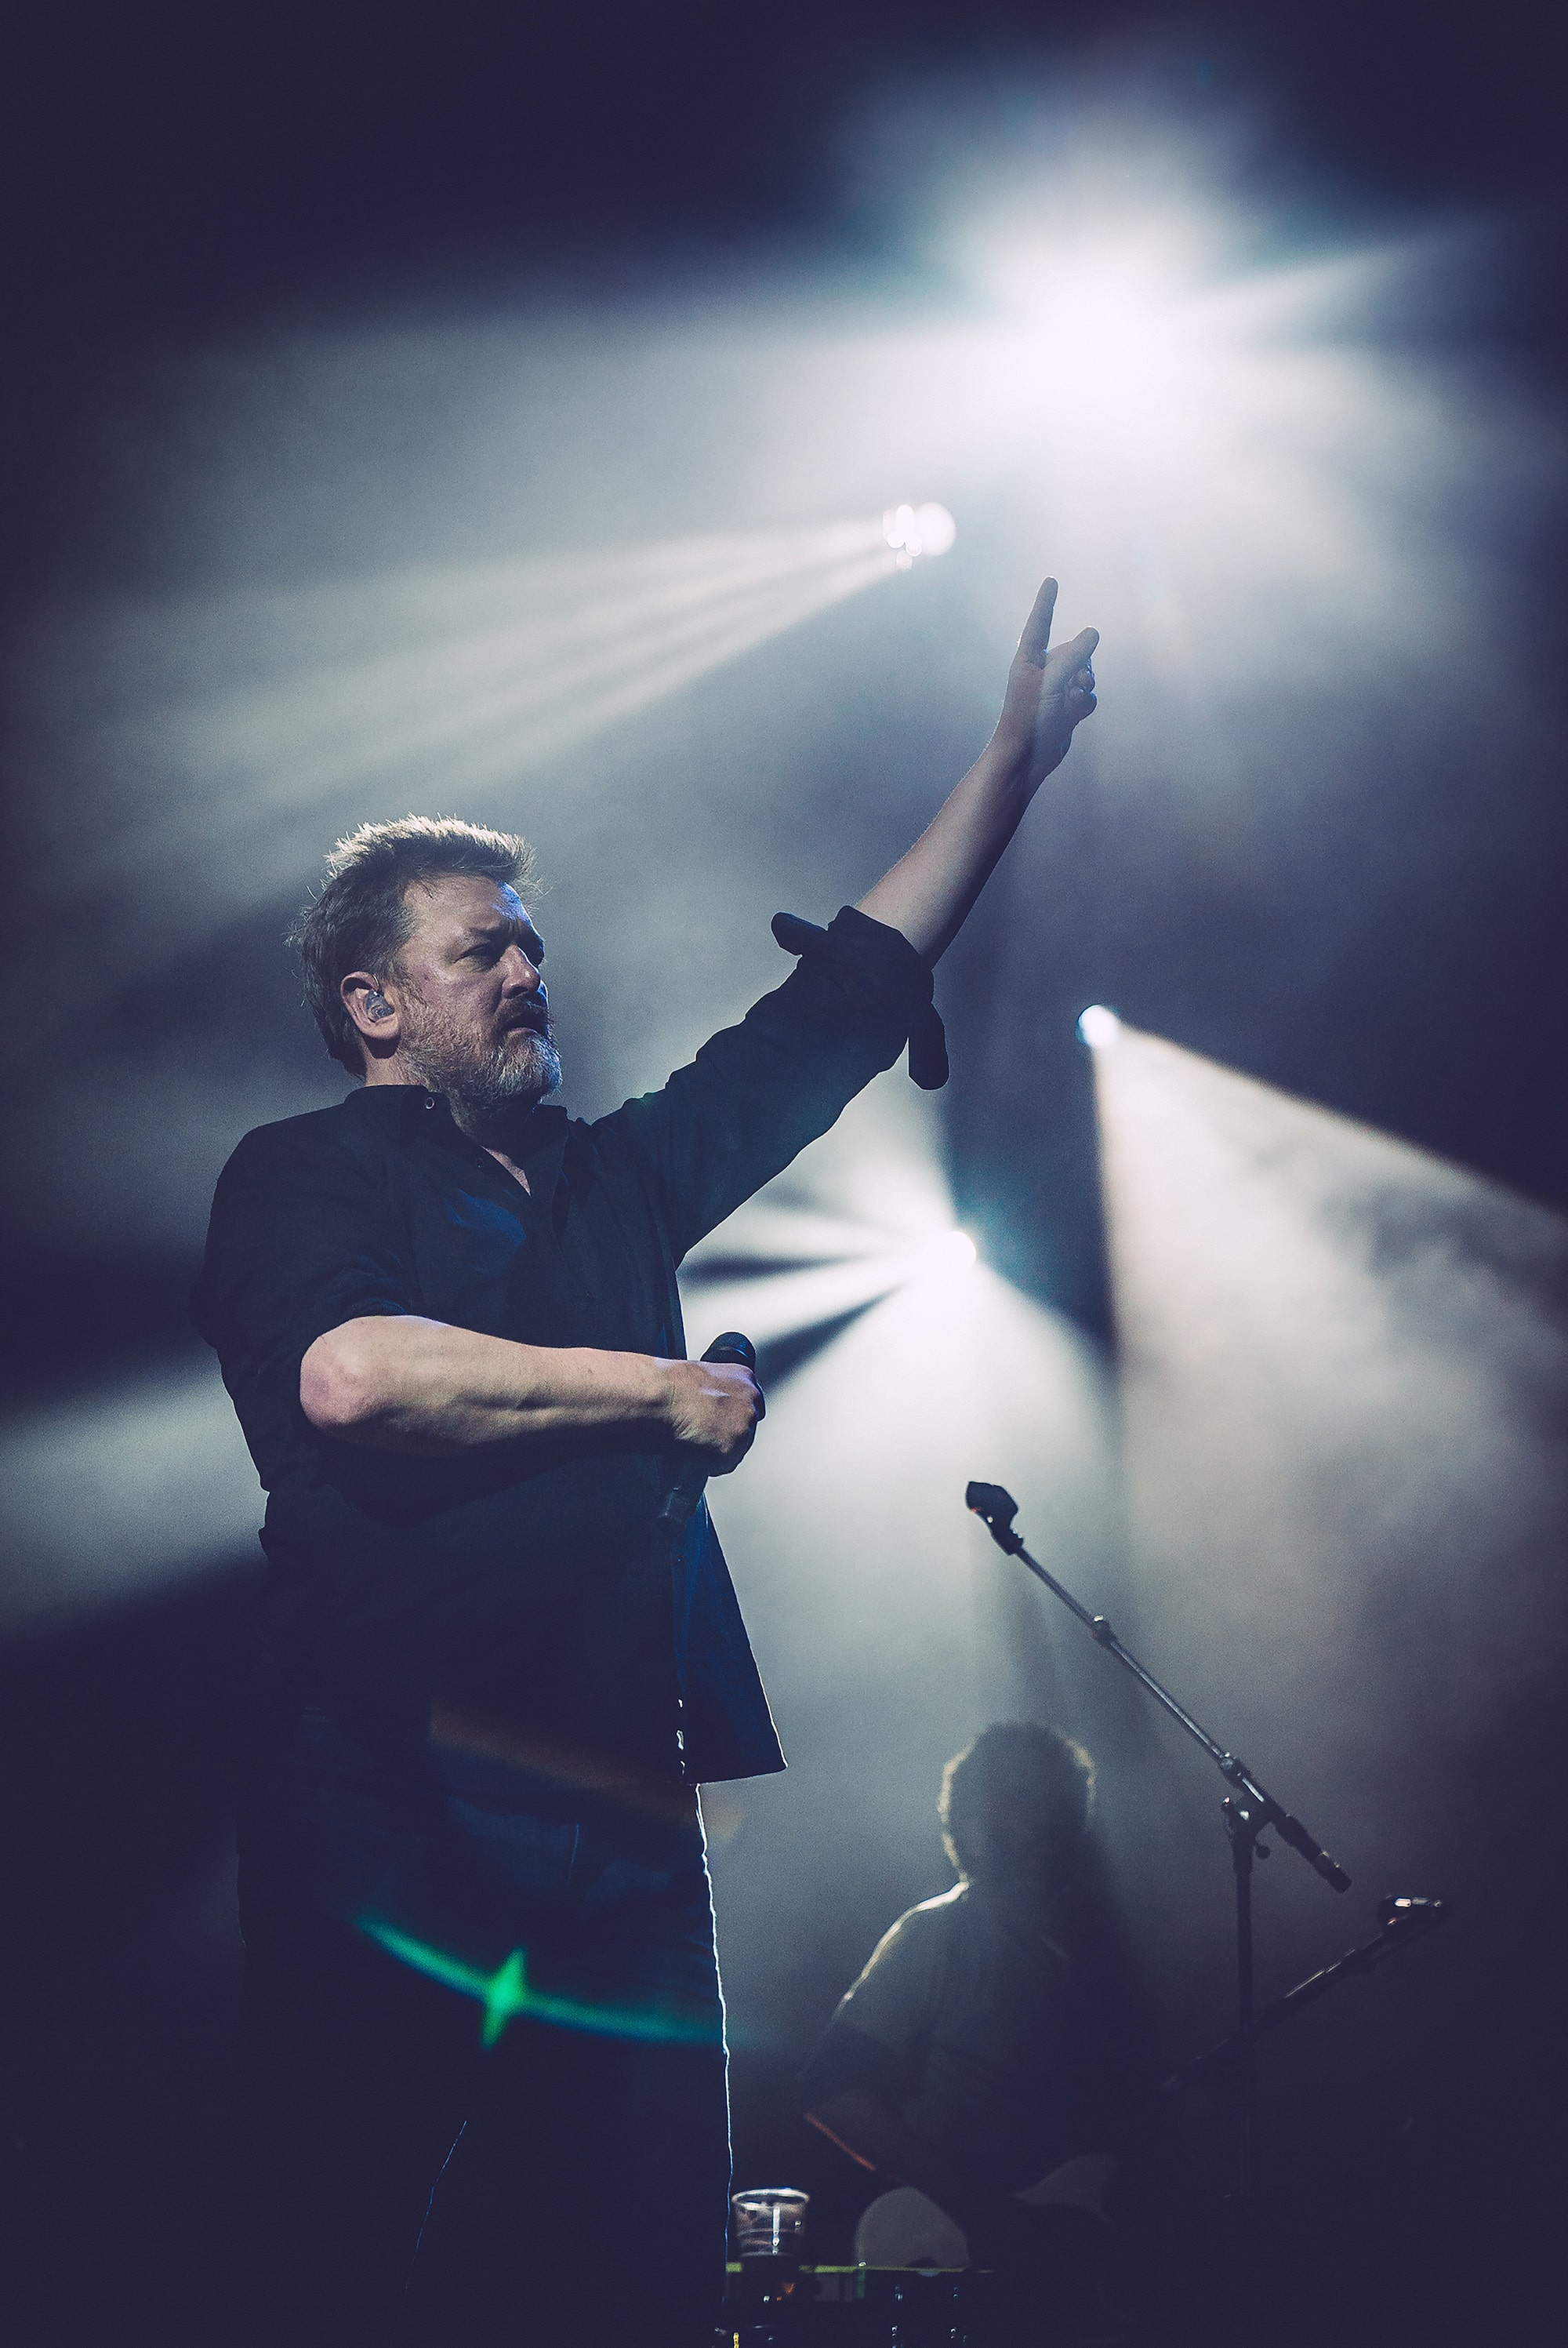 ter-neill-sony-alpha-7SII-guy-garvey-elbow-konserde